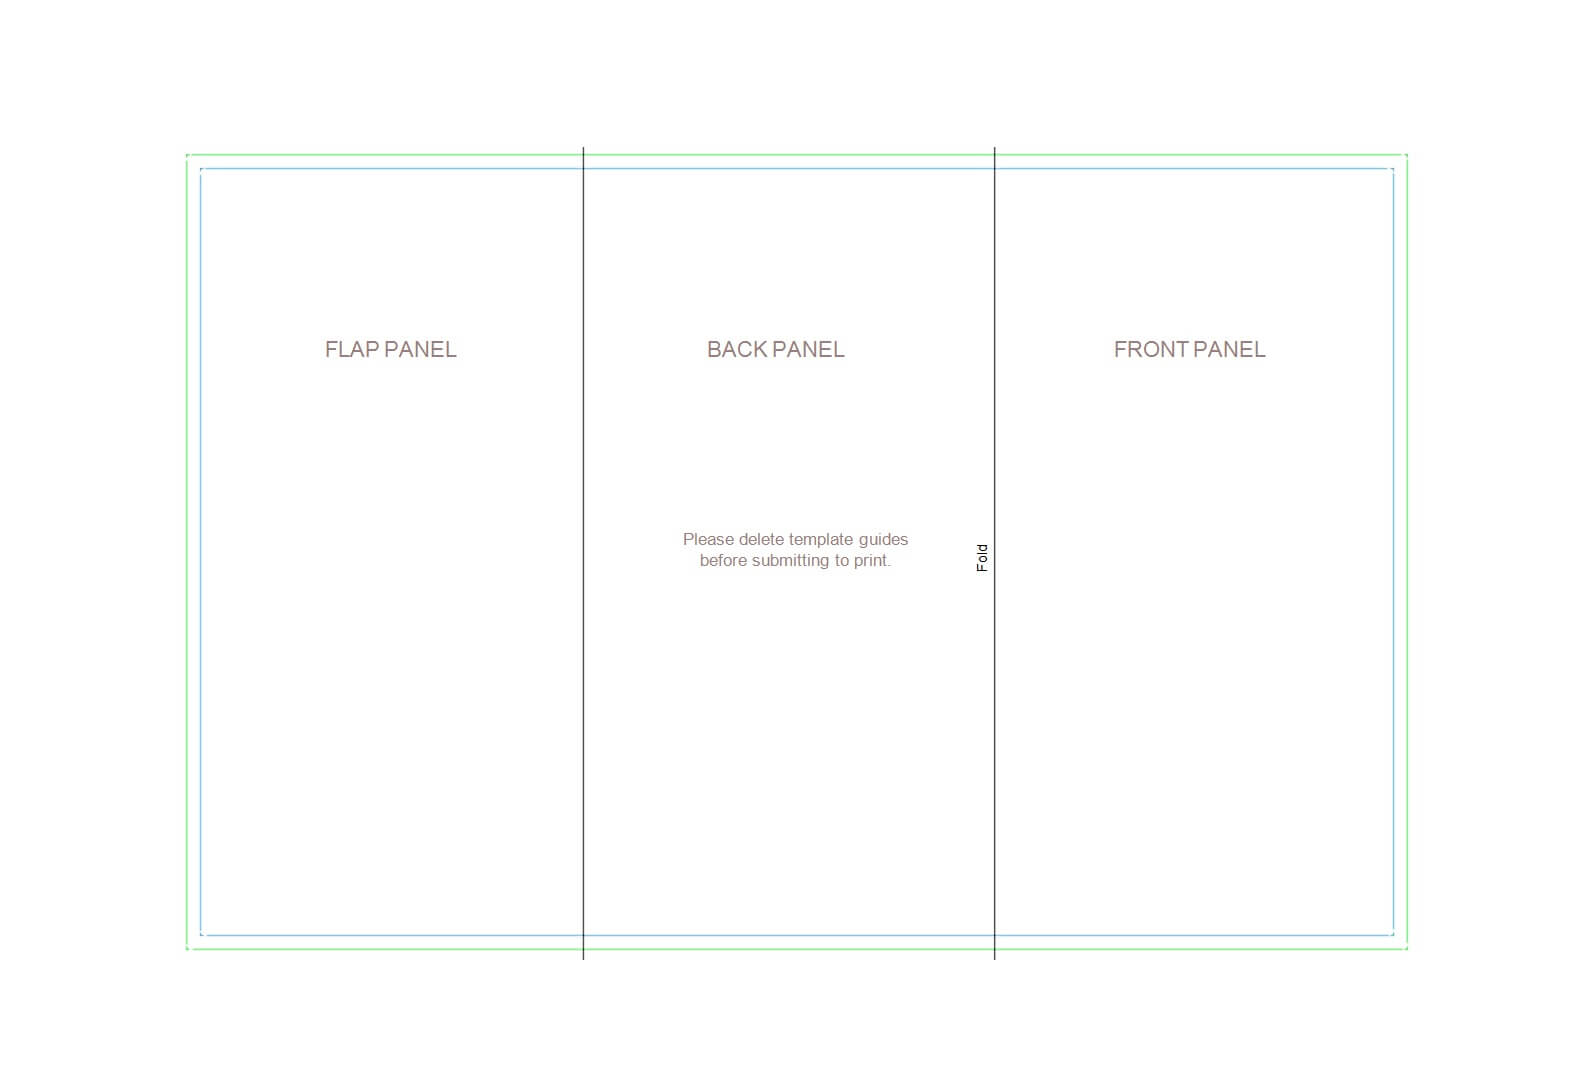 50 Free Pamphlet Templates [Word / Google Docs] ᐅ Template Lab For Brochure Templates Google Drive